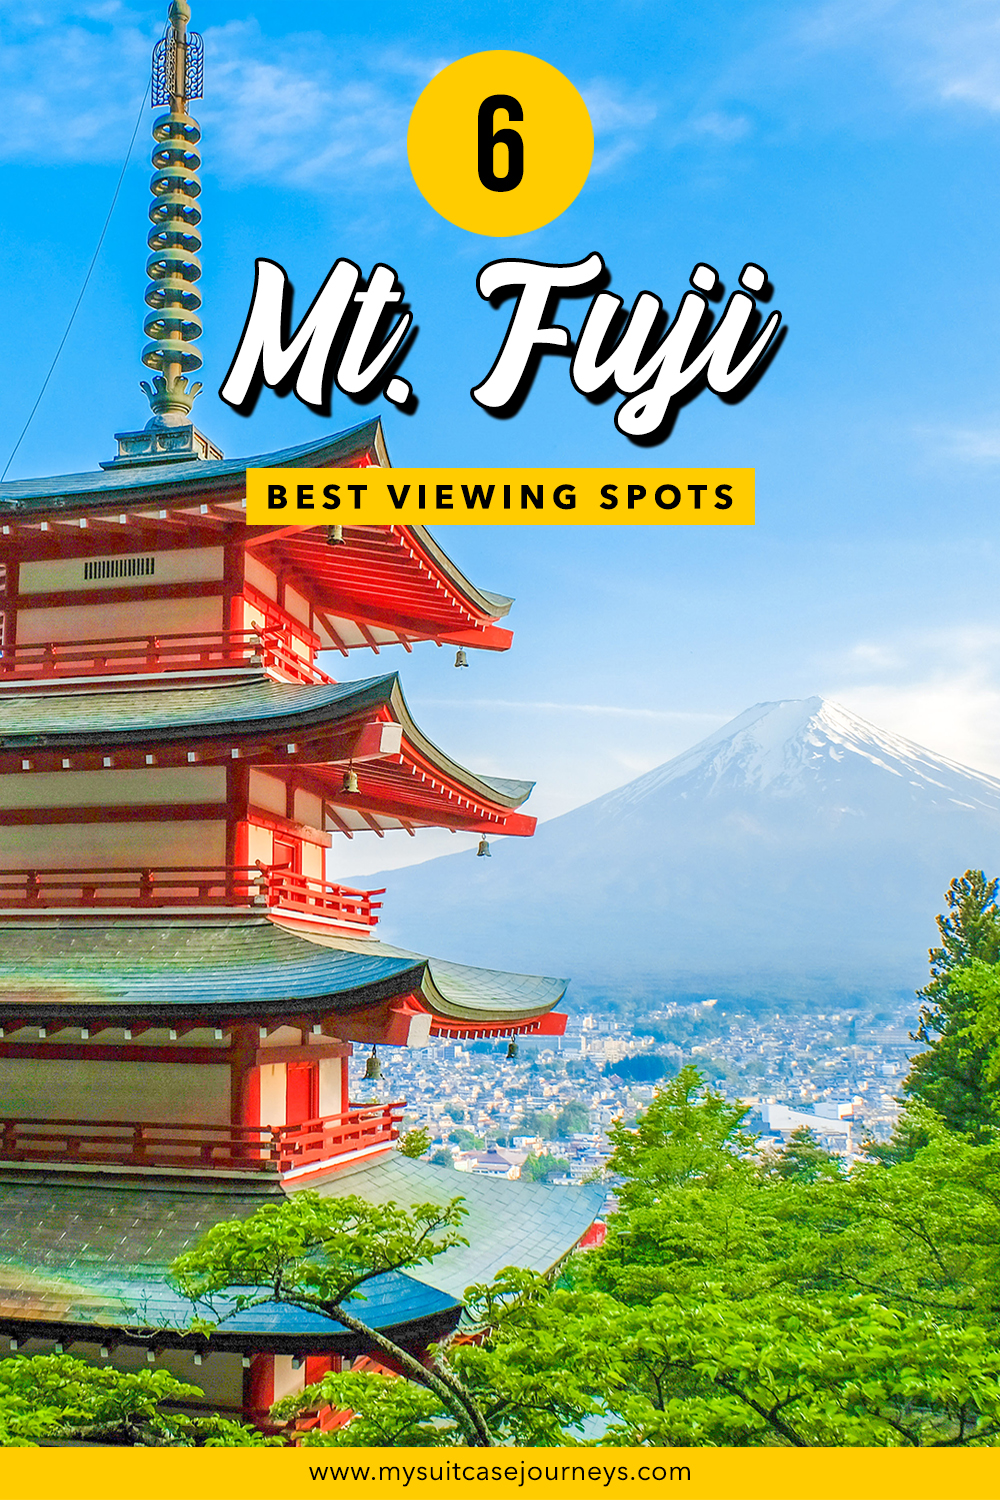 Planning a trip to Japan soon? Here are 6 must-see places where you can enjoy the absolute best views of Mt. Fuji.